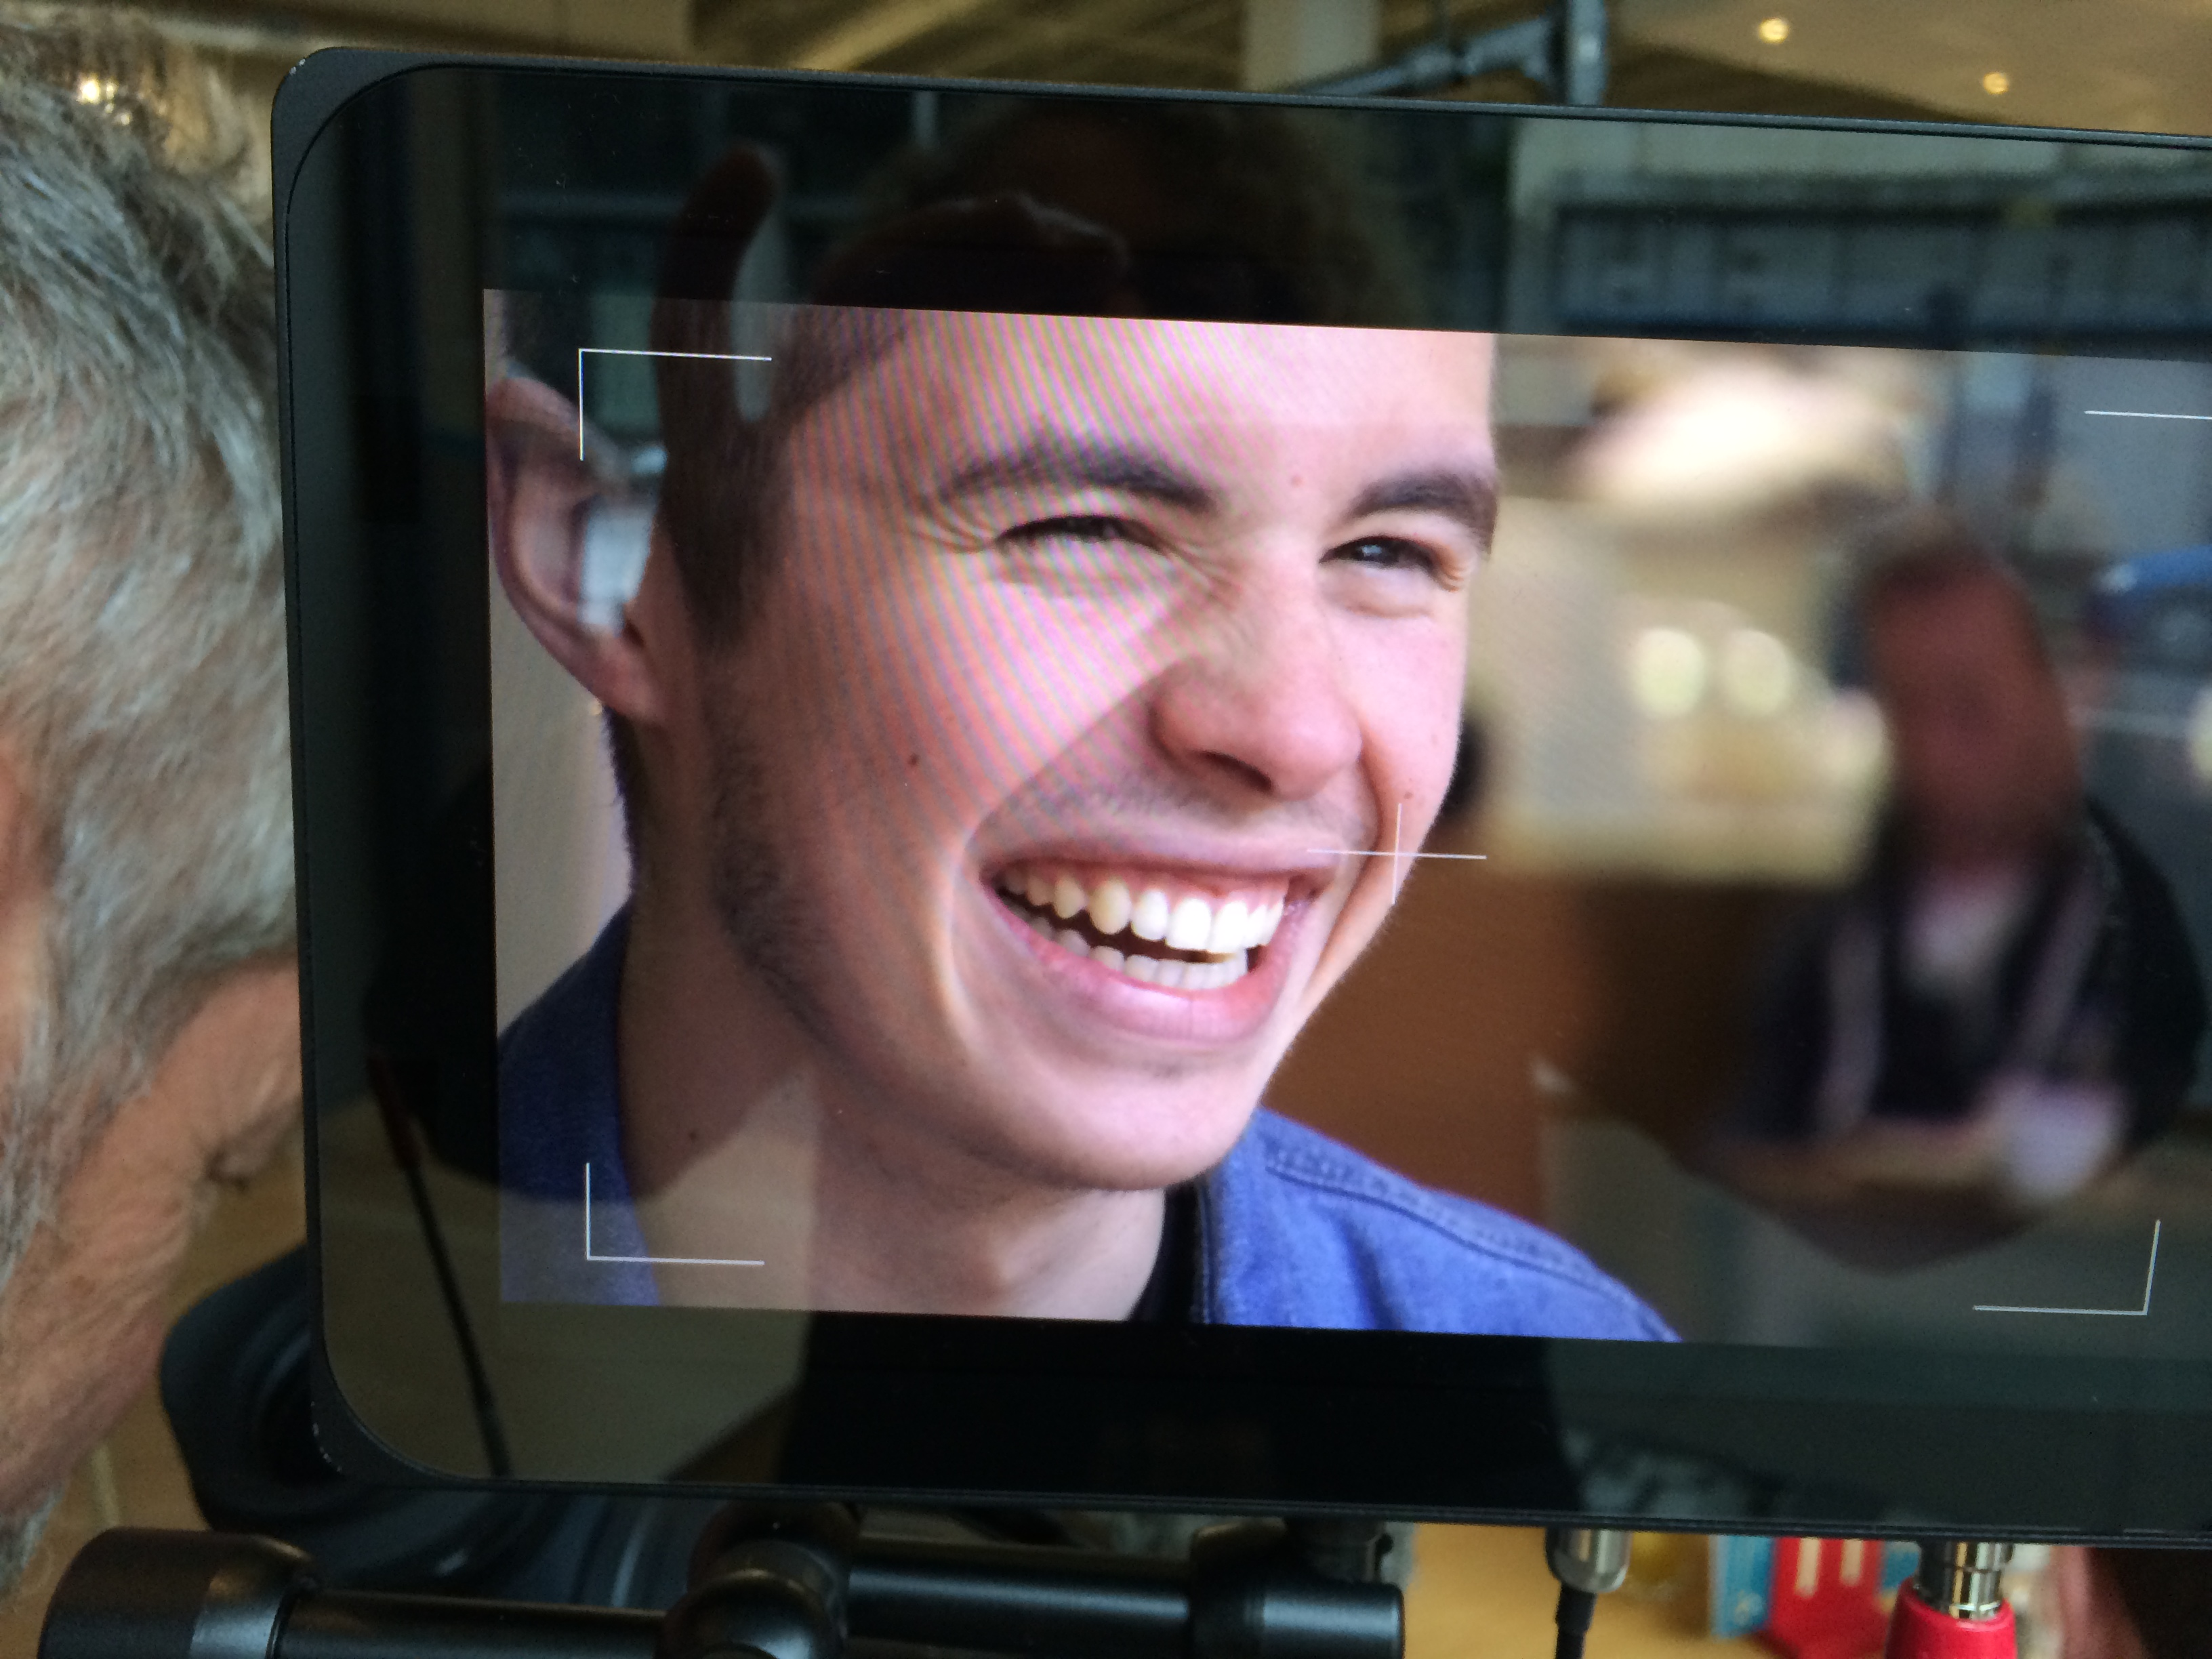 EMT performer Robbie Noble gets the close-up treatment, as seen on the producer's monitor.